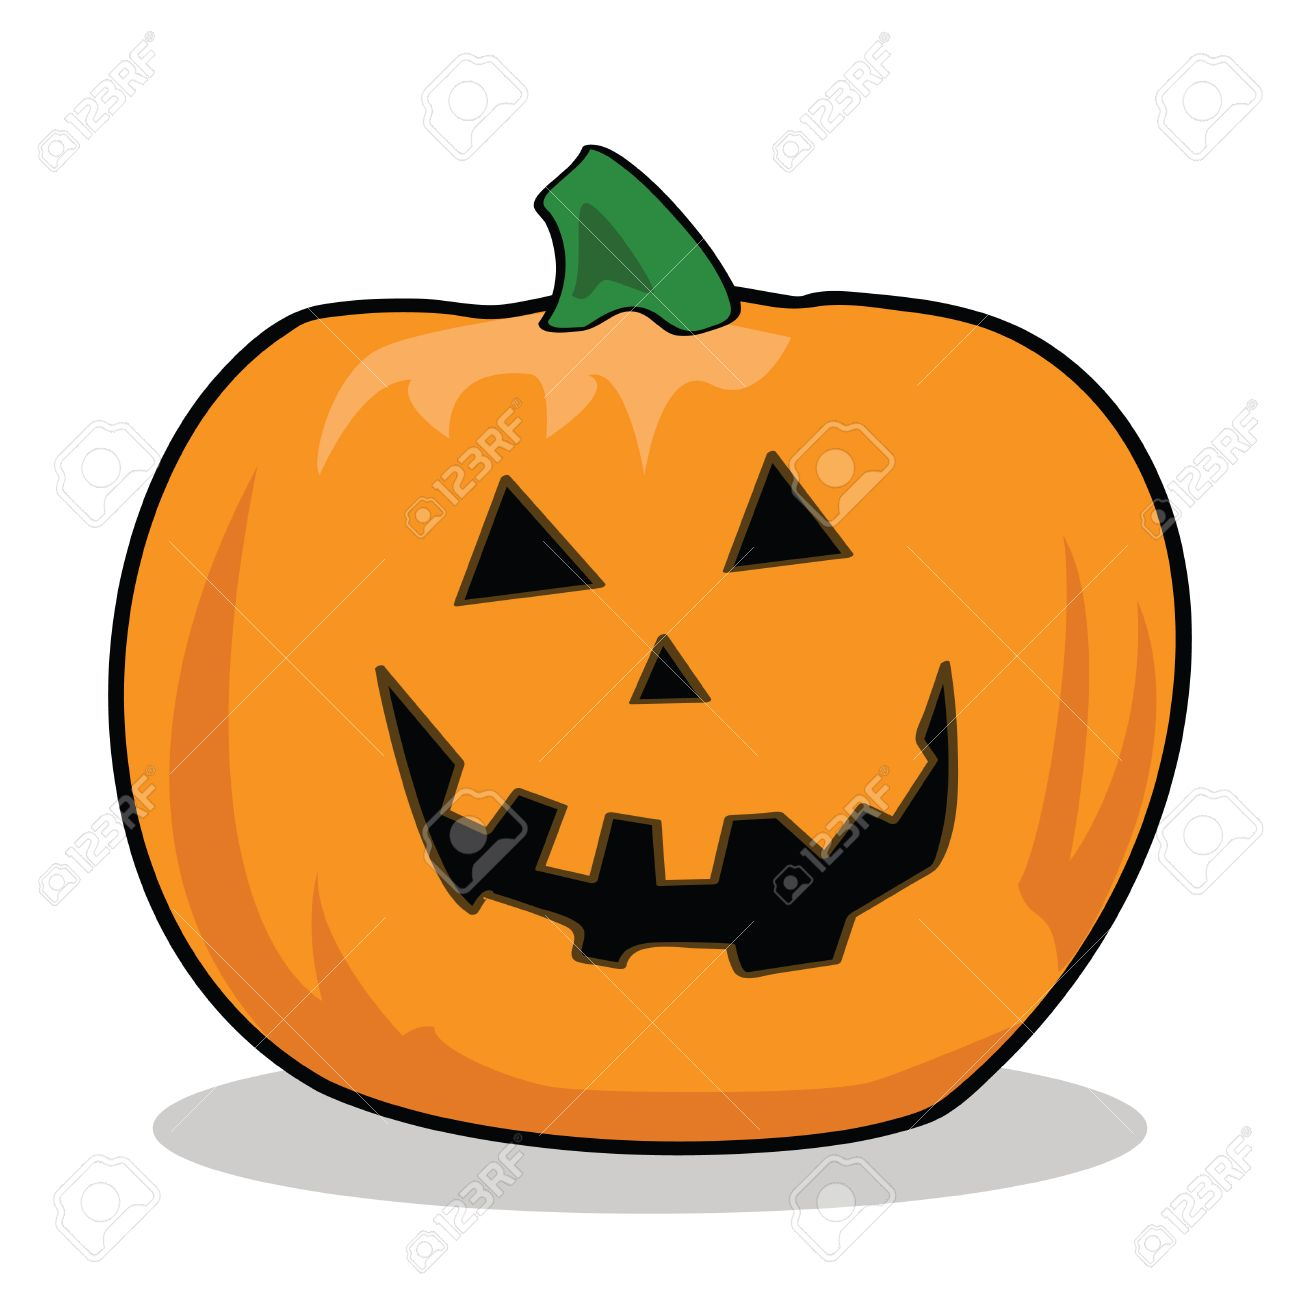 Cartoon illustration of a carved pumpkin for halloween royalty cartoon illustration of a carved pumpkin for halloween stock vector 7530374 thecheapjerseys Choice Image